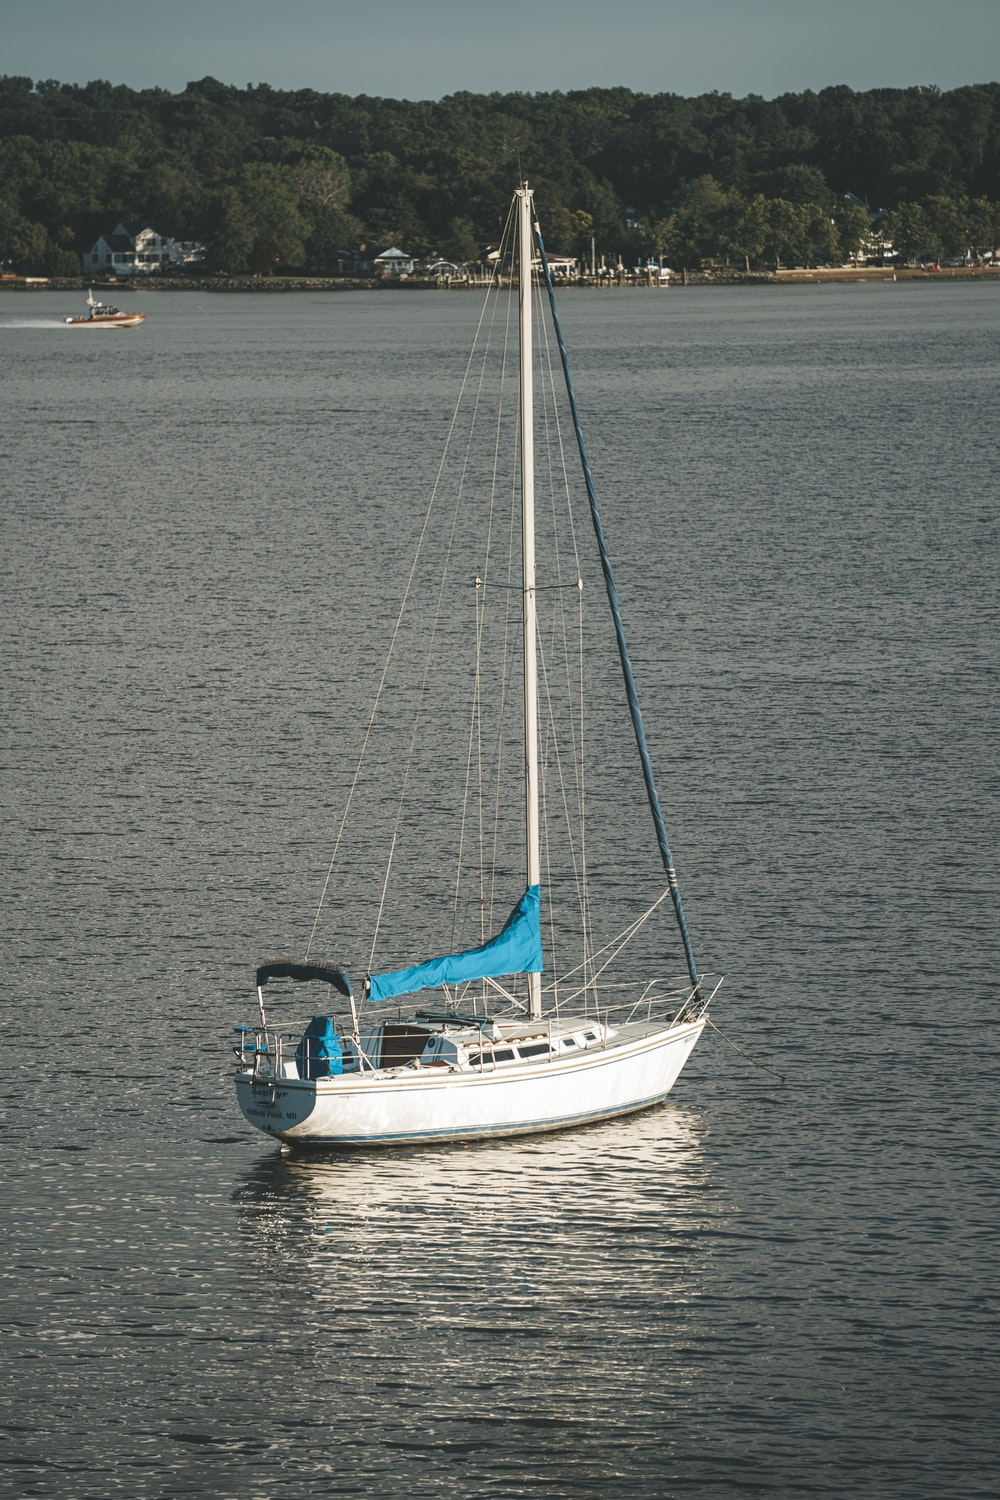 white and blue sailboat on sea during daytime